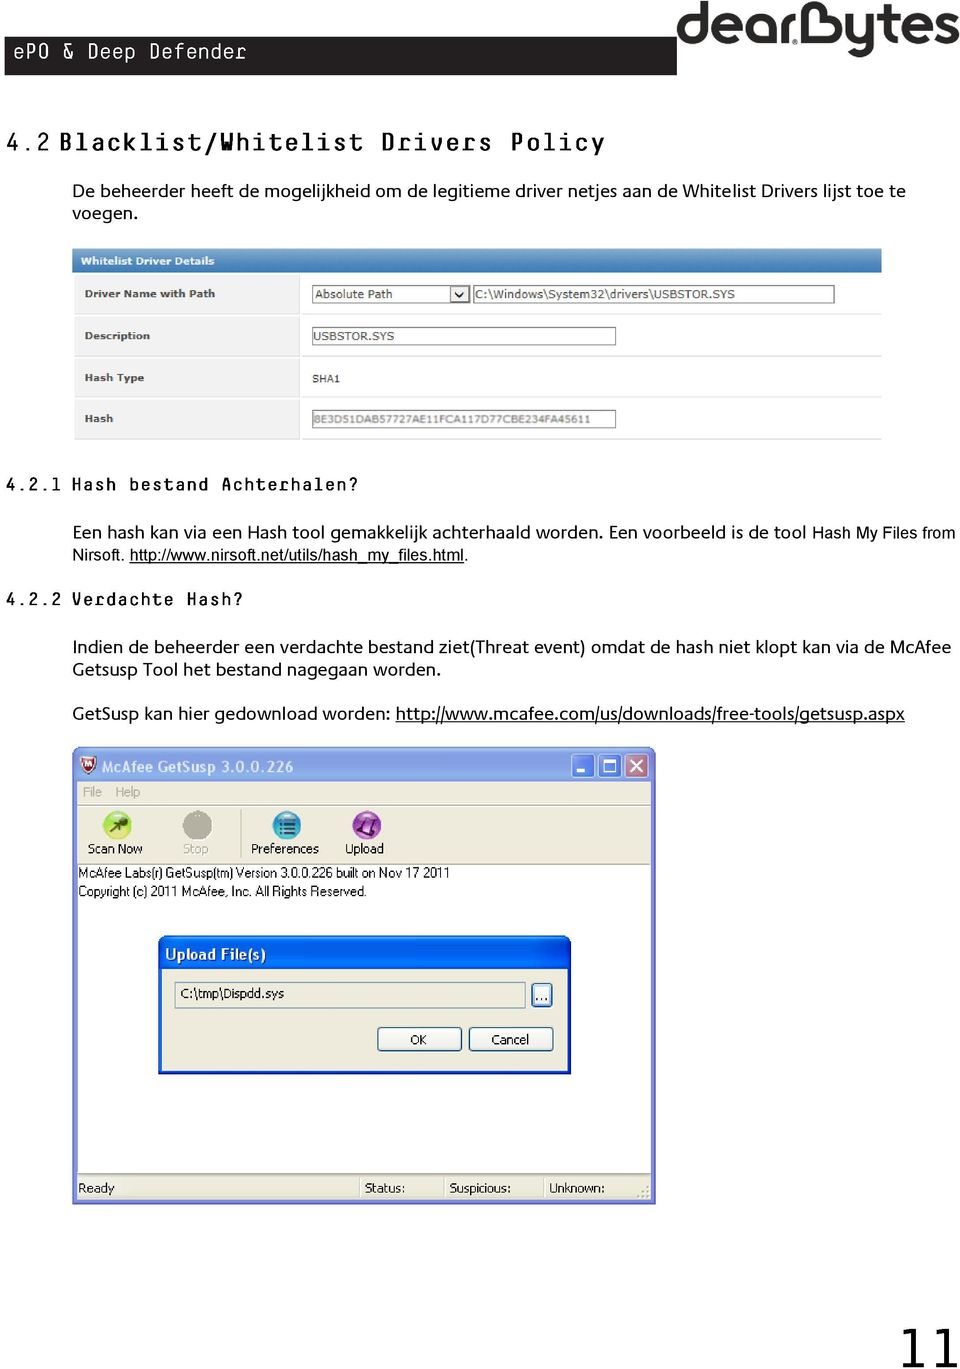 nirsoft.net/utils/hash_my_files.html.